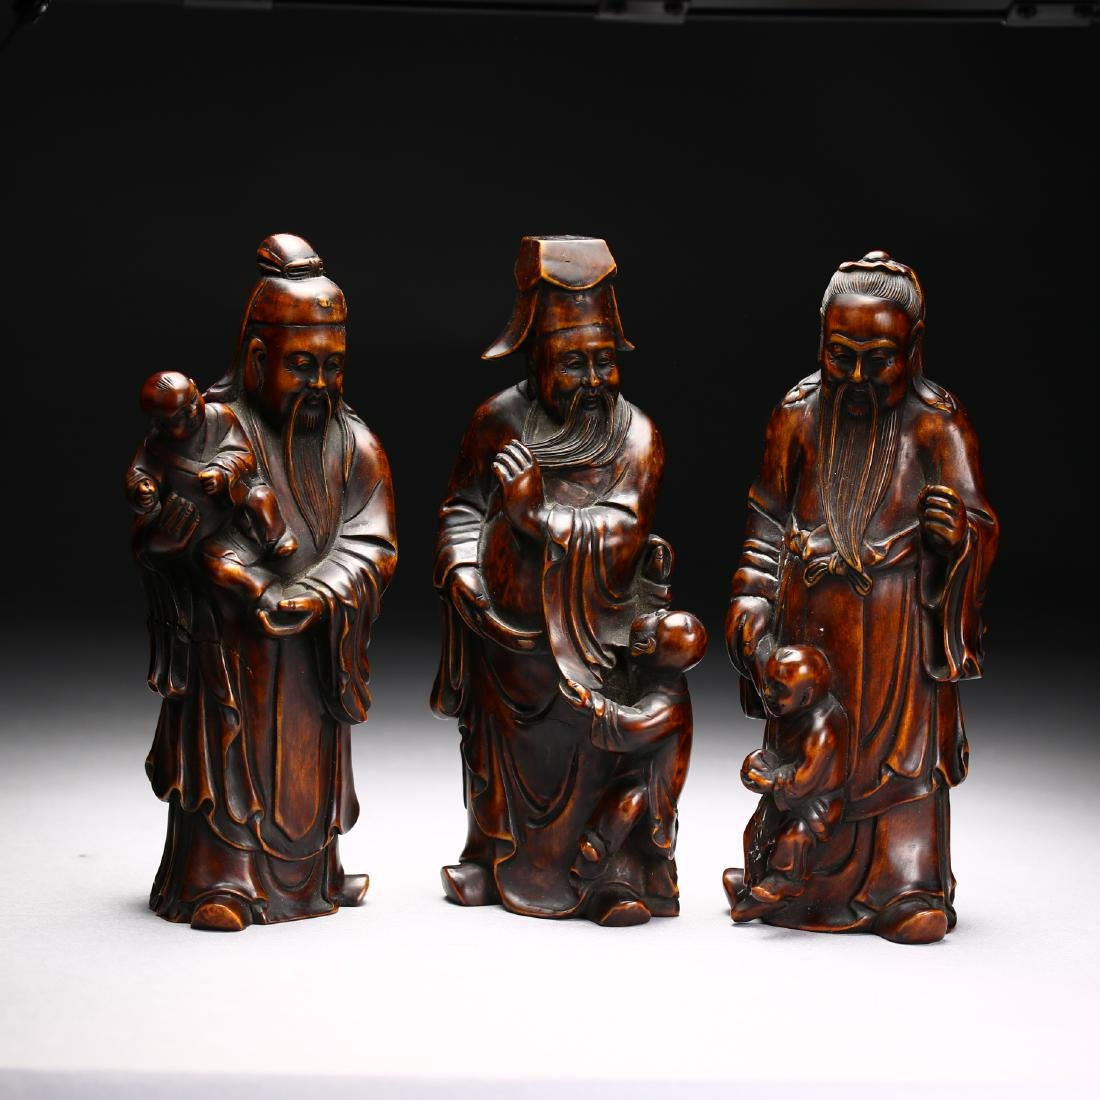 Three Huangyang Wood Carved Figures,Qing dynasty